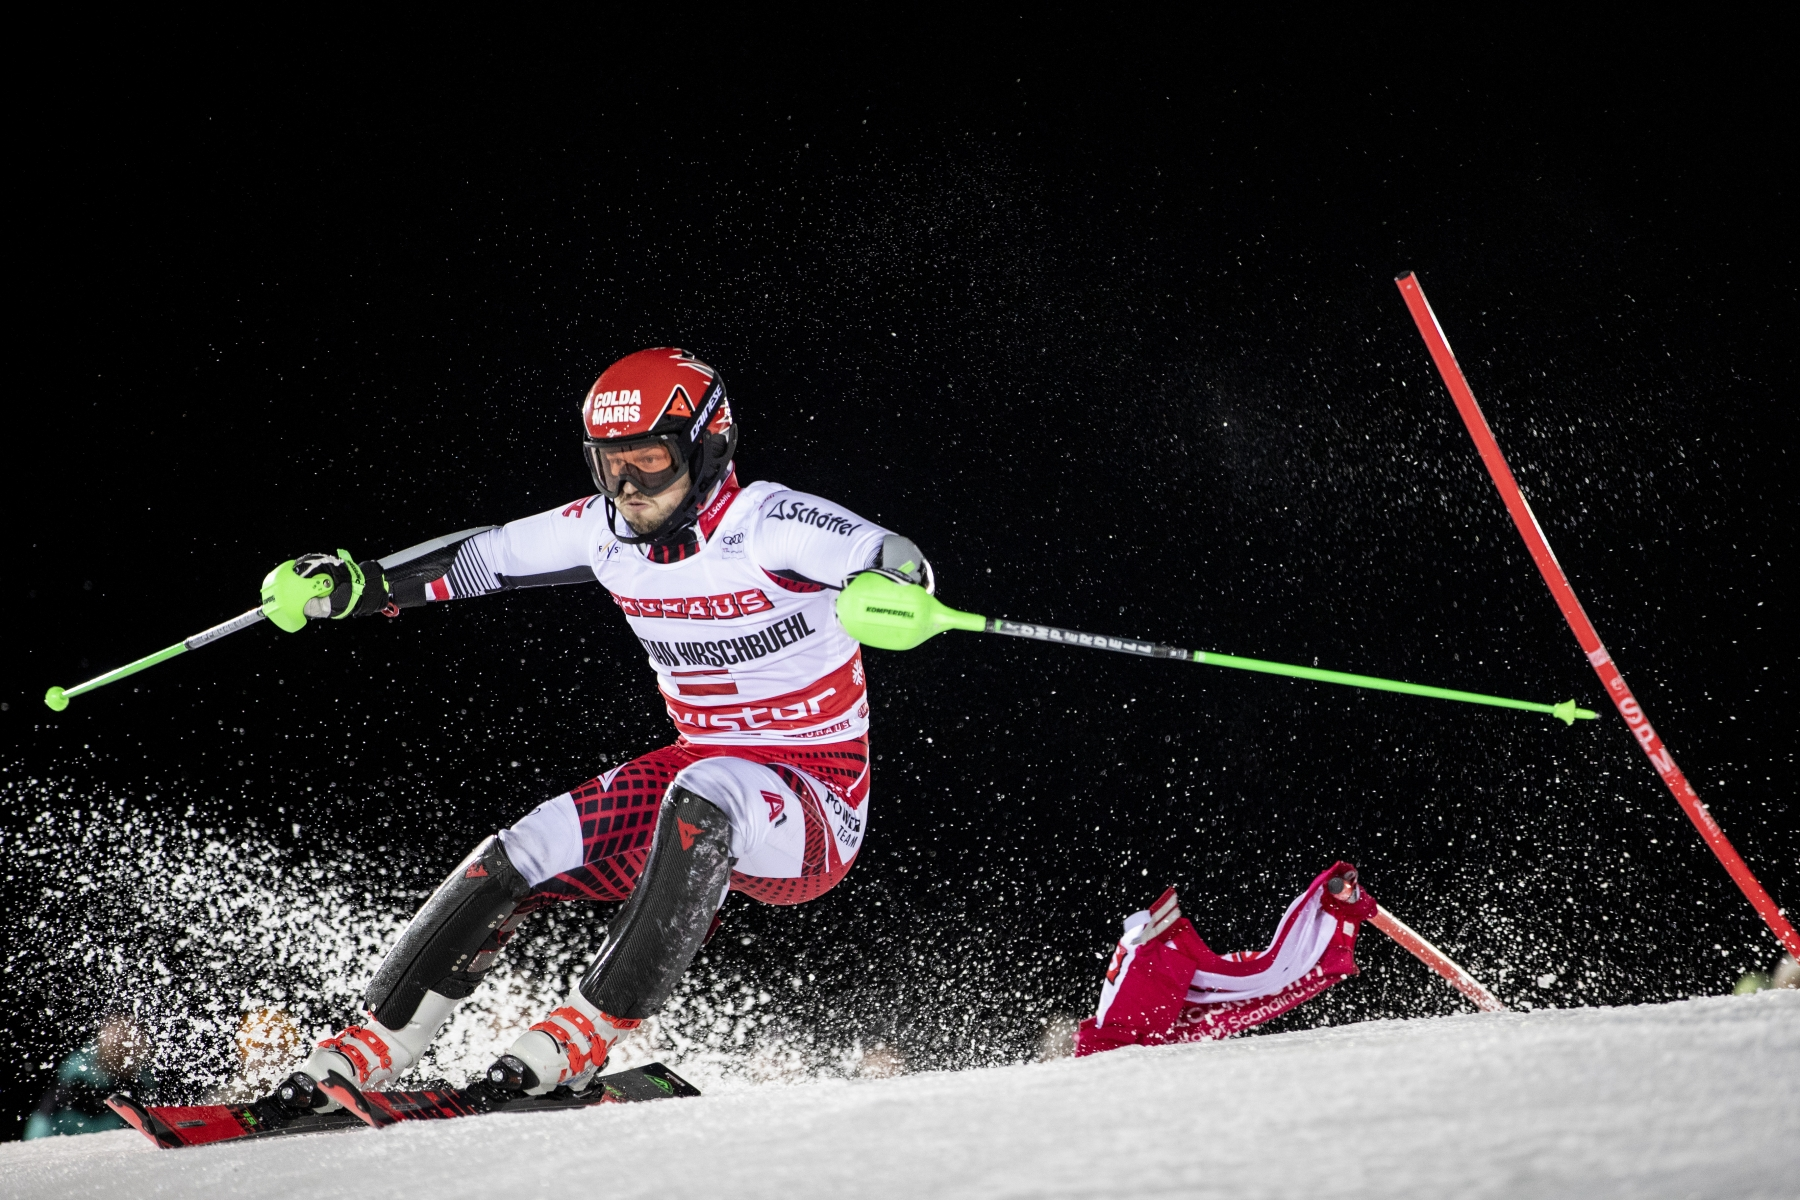 Christian Hirschbuehl in the world Cup in parallel slalom in Stockholm 2019